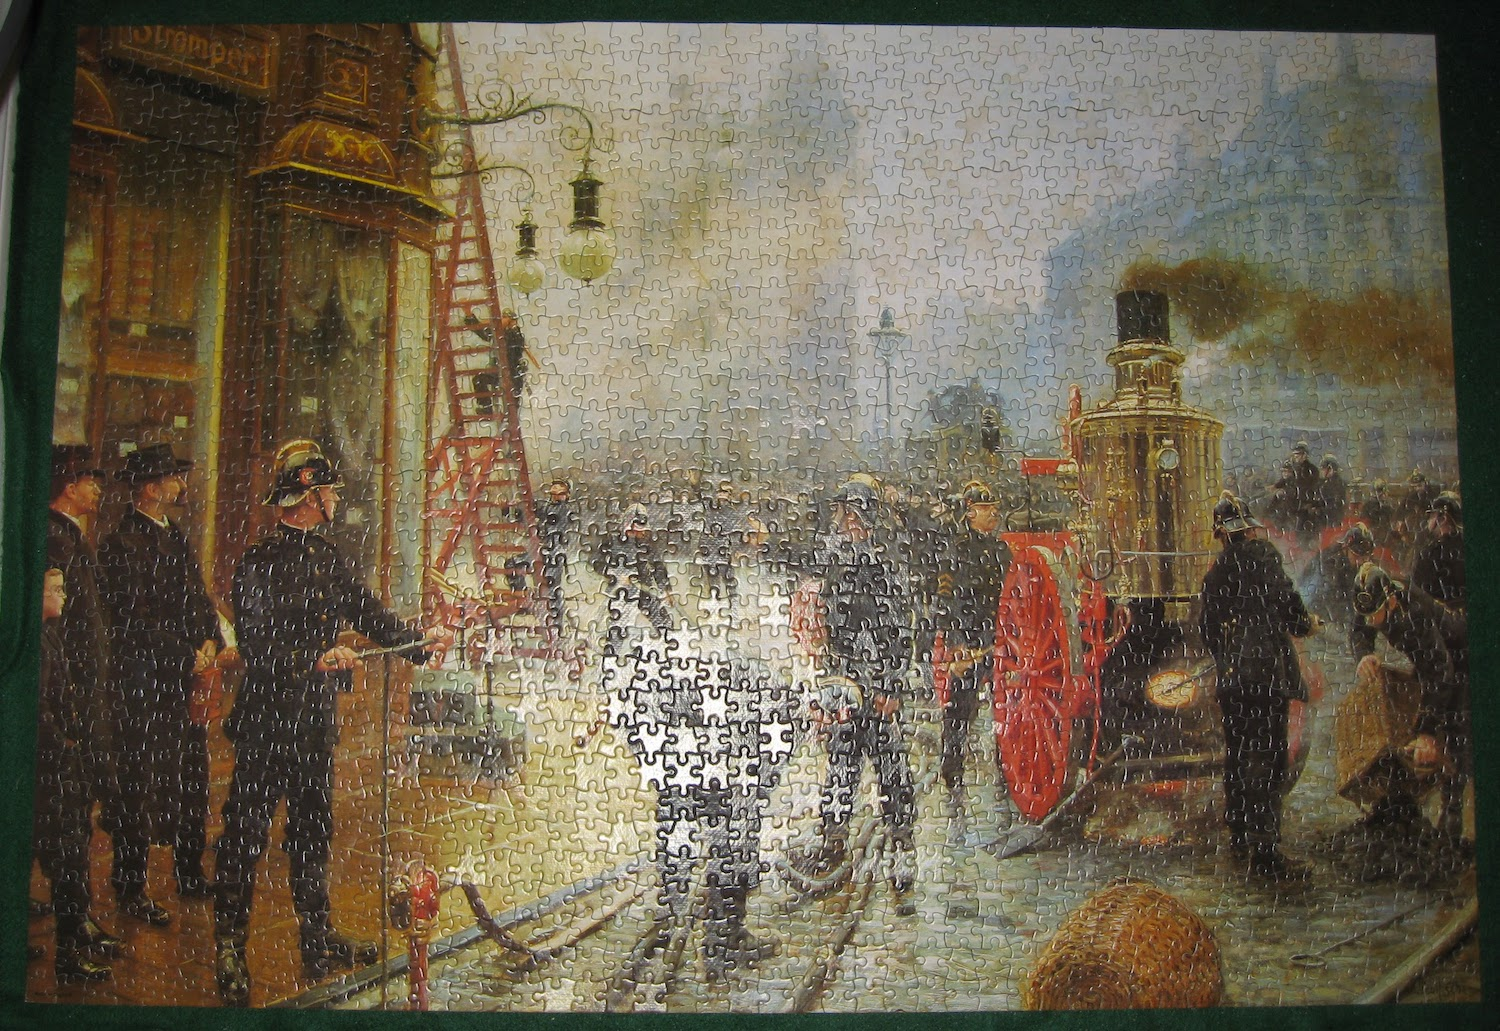 Image of the Assembled Puzzle 1500, Falcon, The Fire Brigade Turn Out in Kultorvet, Copenhagen